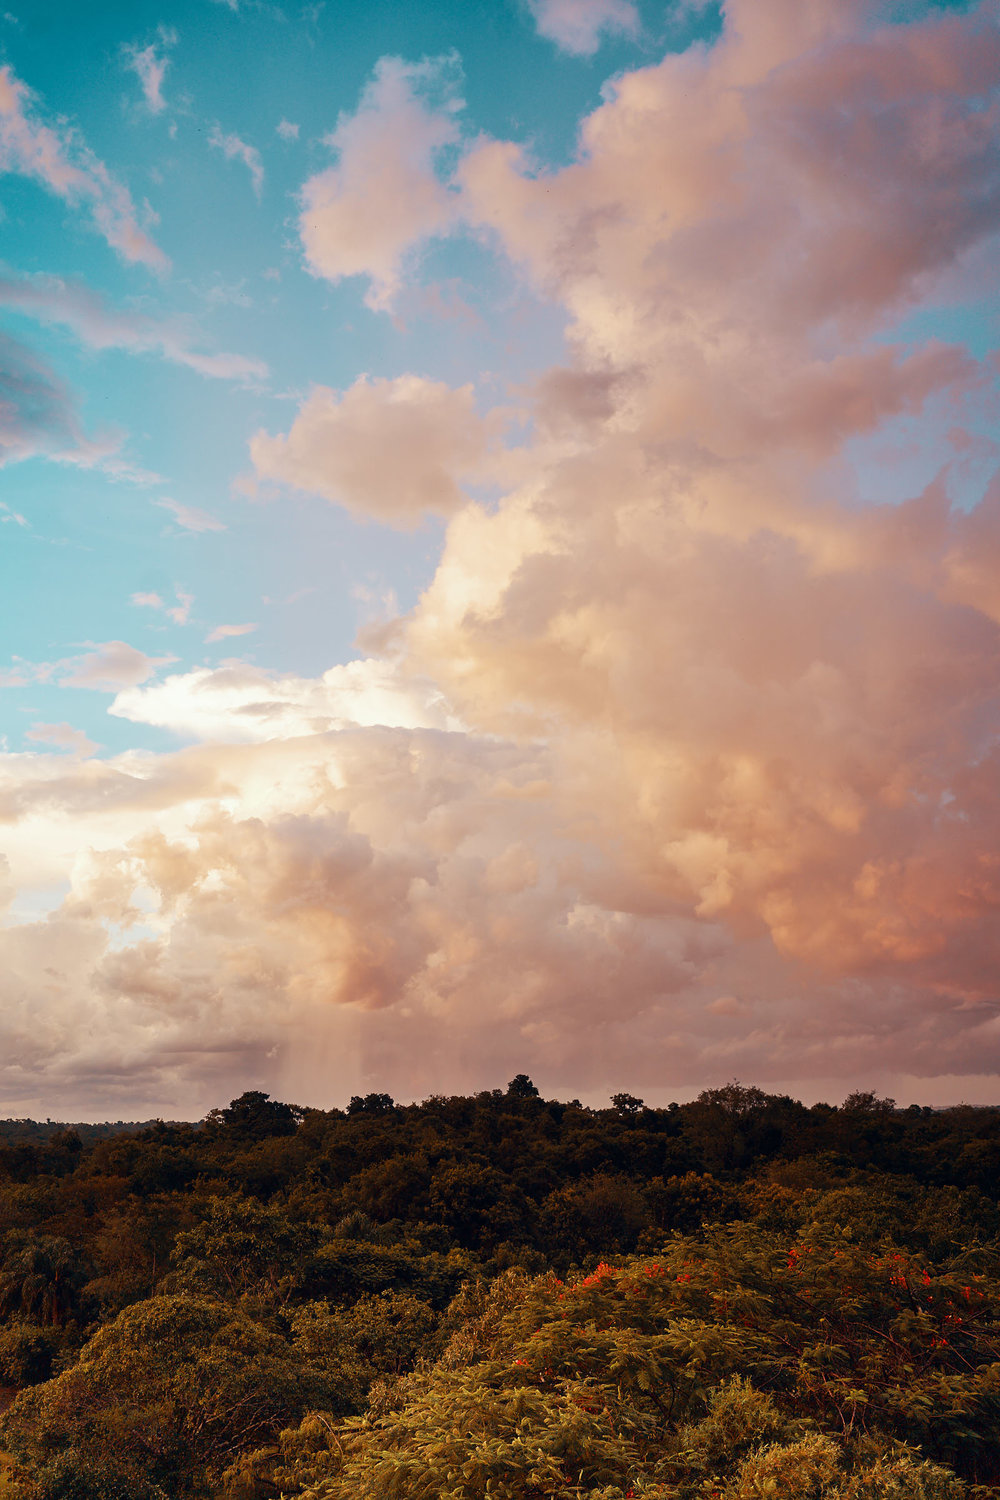 Nature creating riots of colours in the evening sky over Iguazu rainforest.